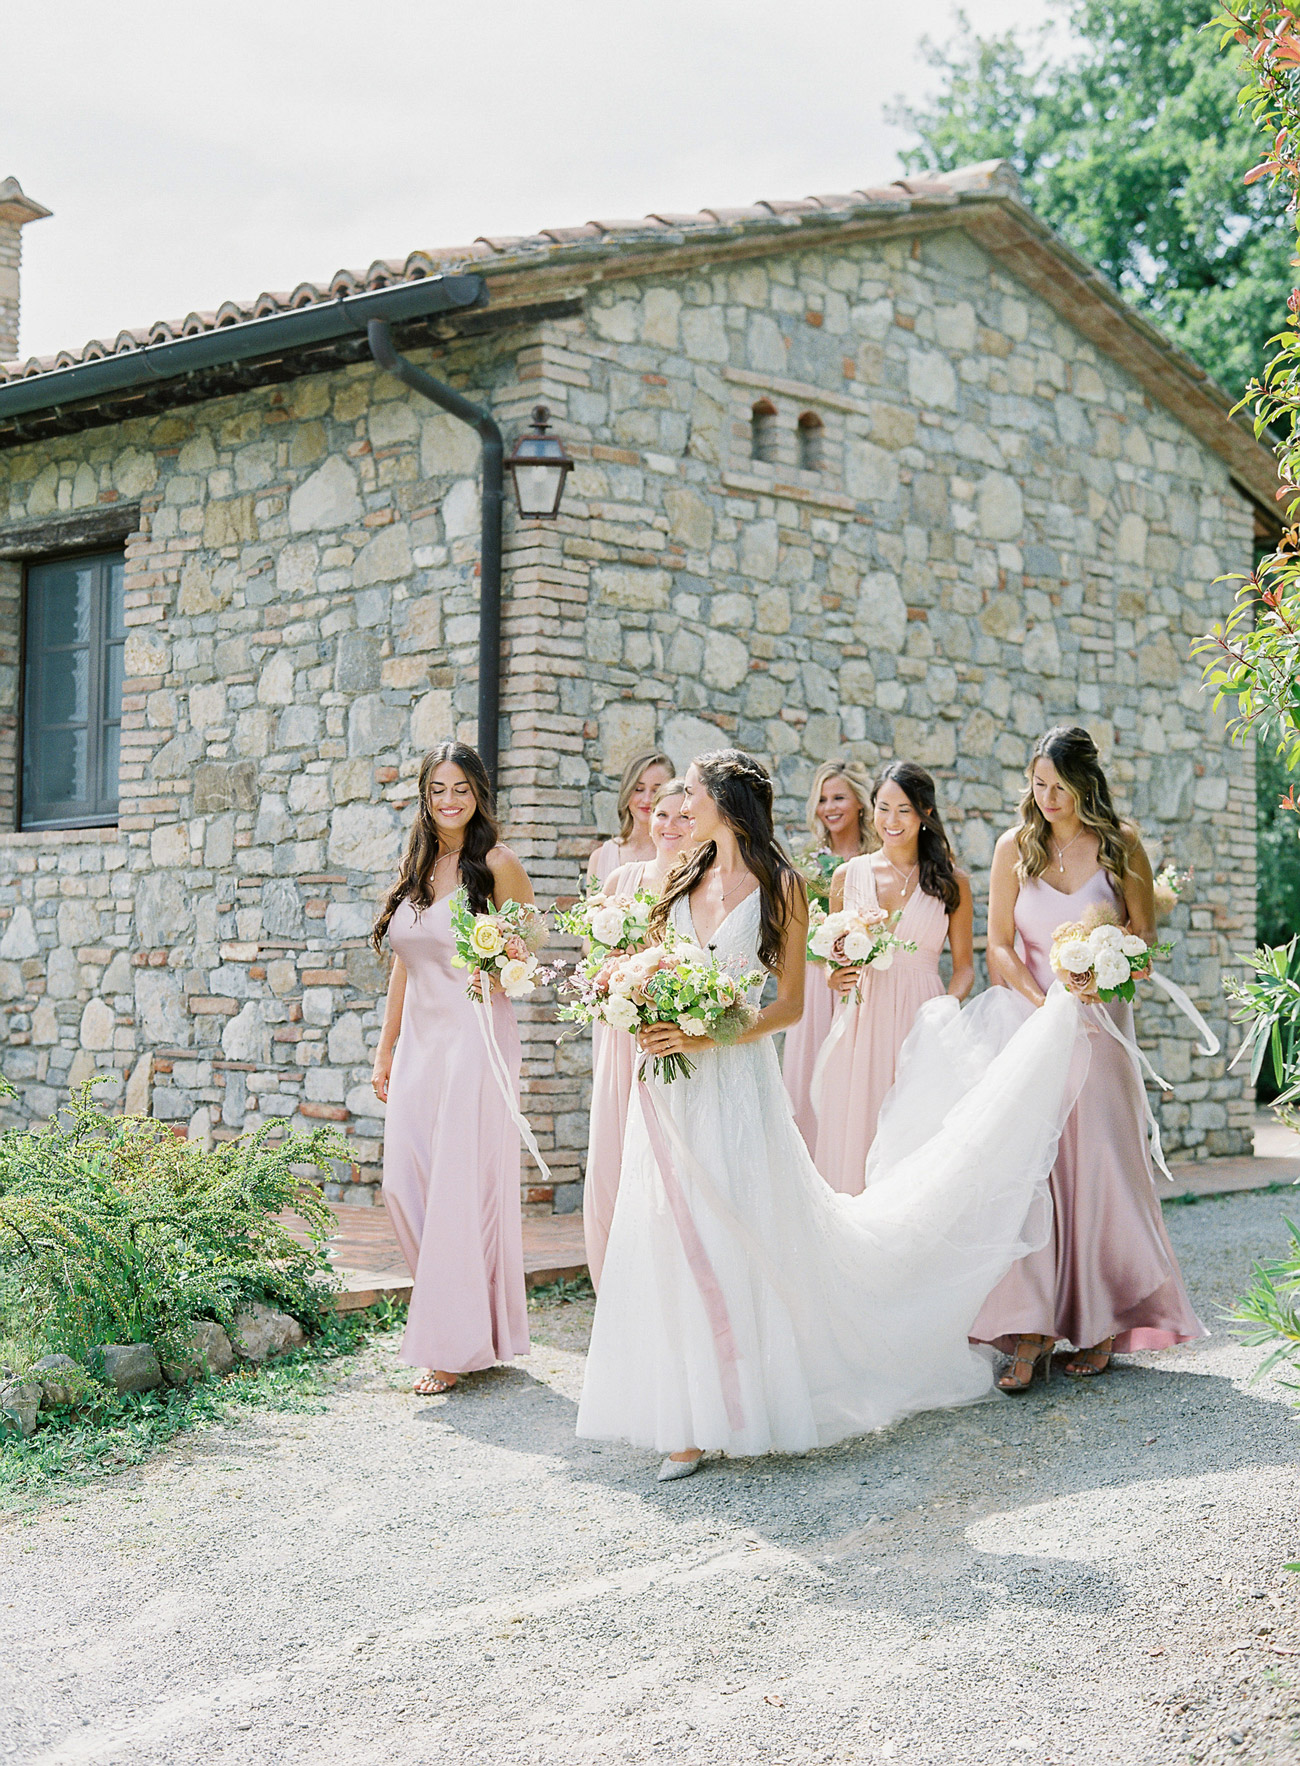 Madison with bridesmaids outside stone building